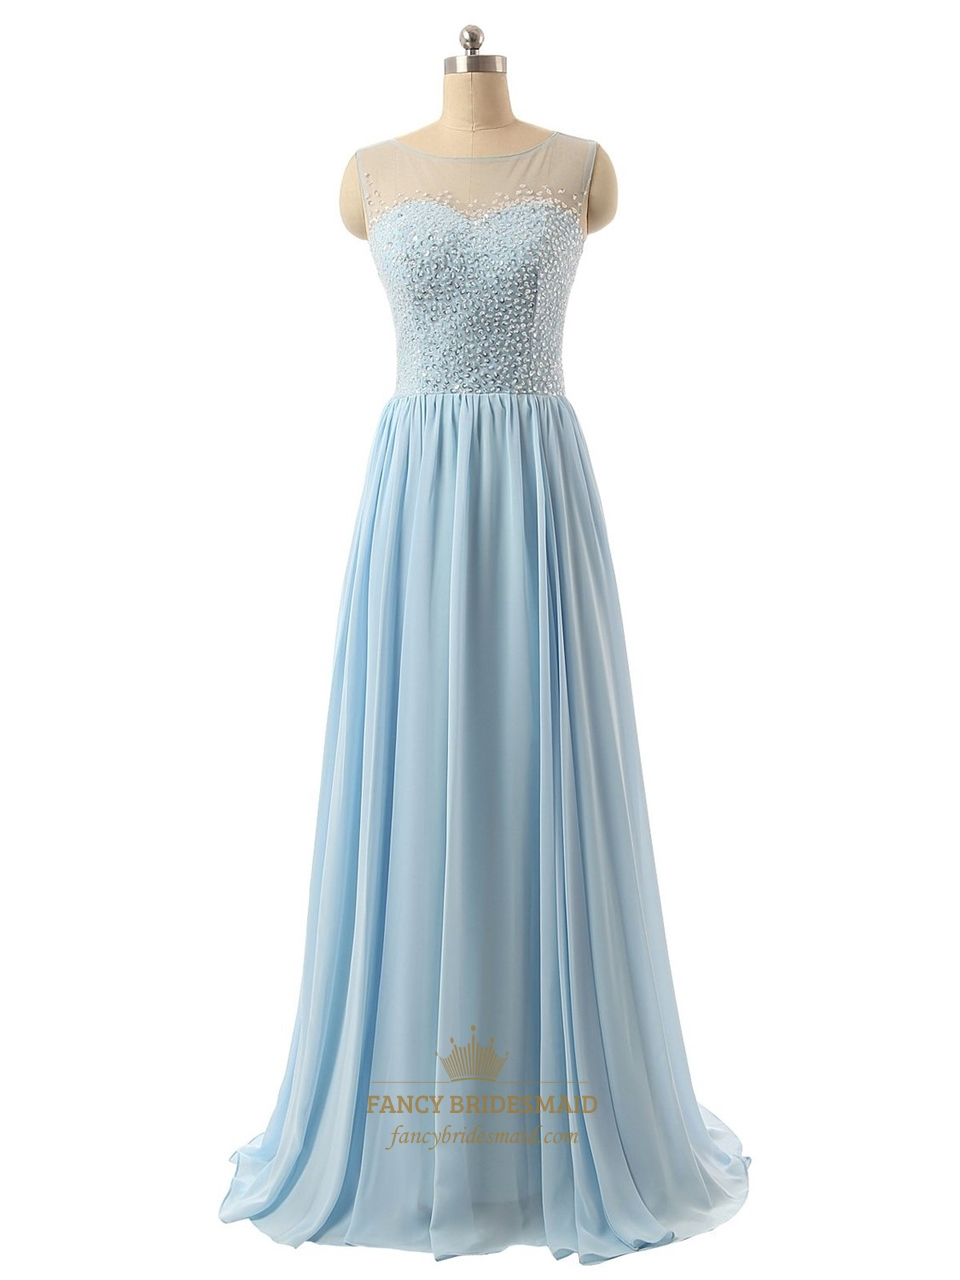 Light Blue Sequin Bodice Bridesmaid Dress With Beaded Illusion Neck